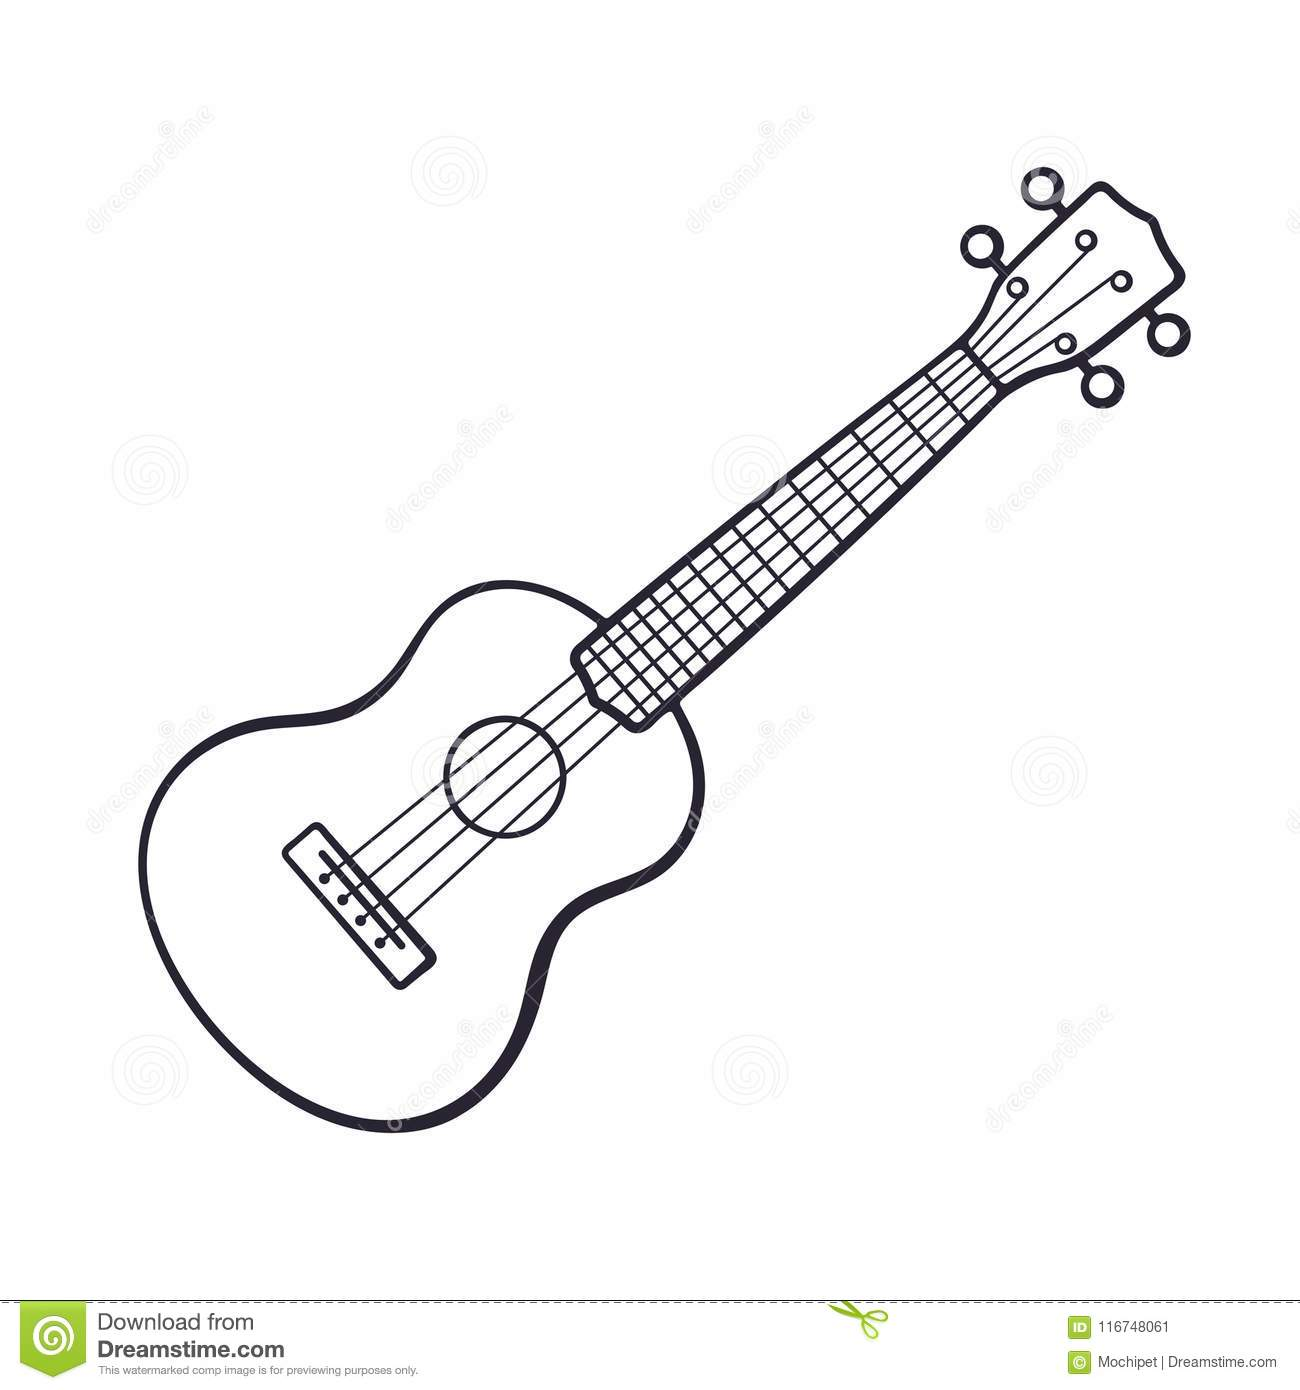 Doodle Of Small Classical Guitar Stock Vector - Illustration